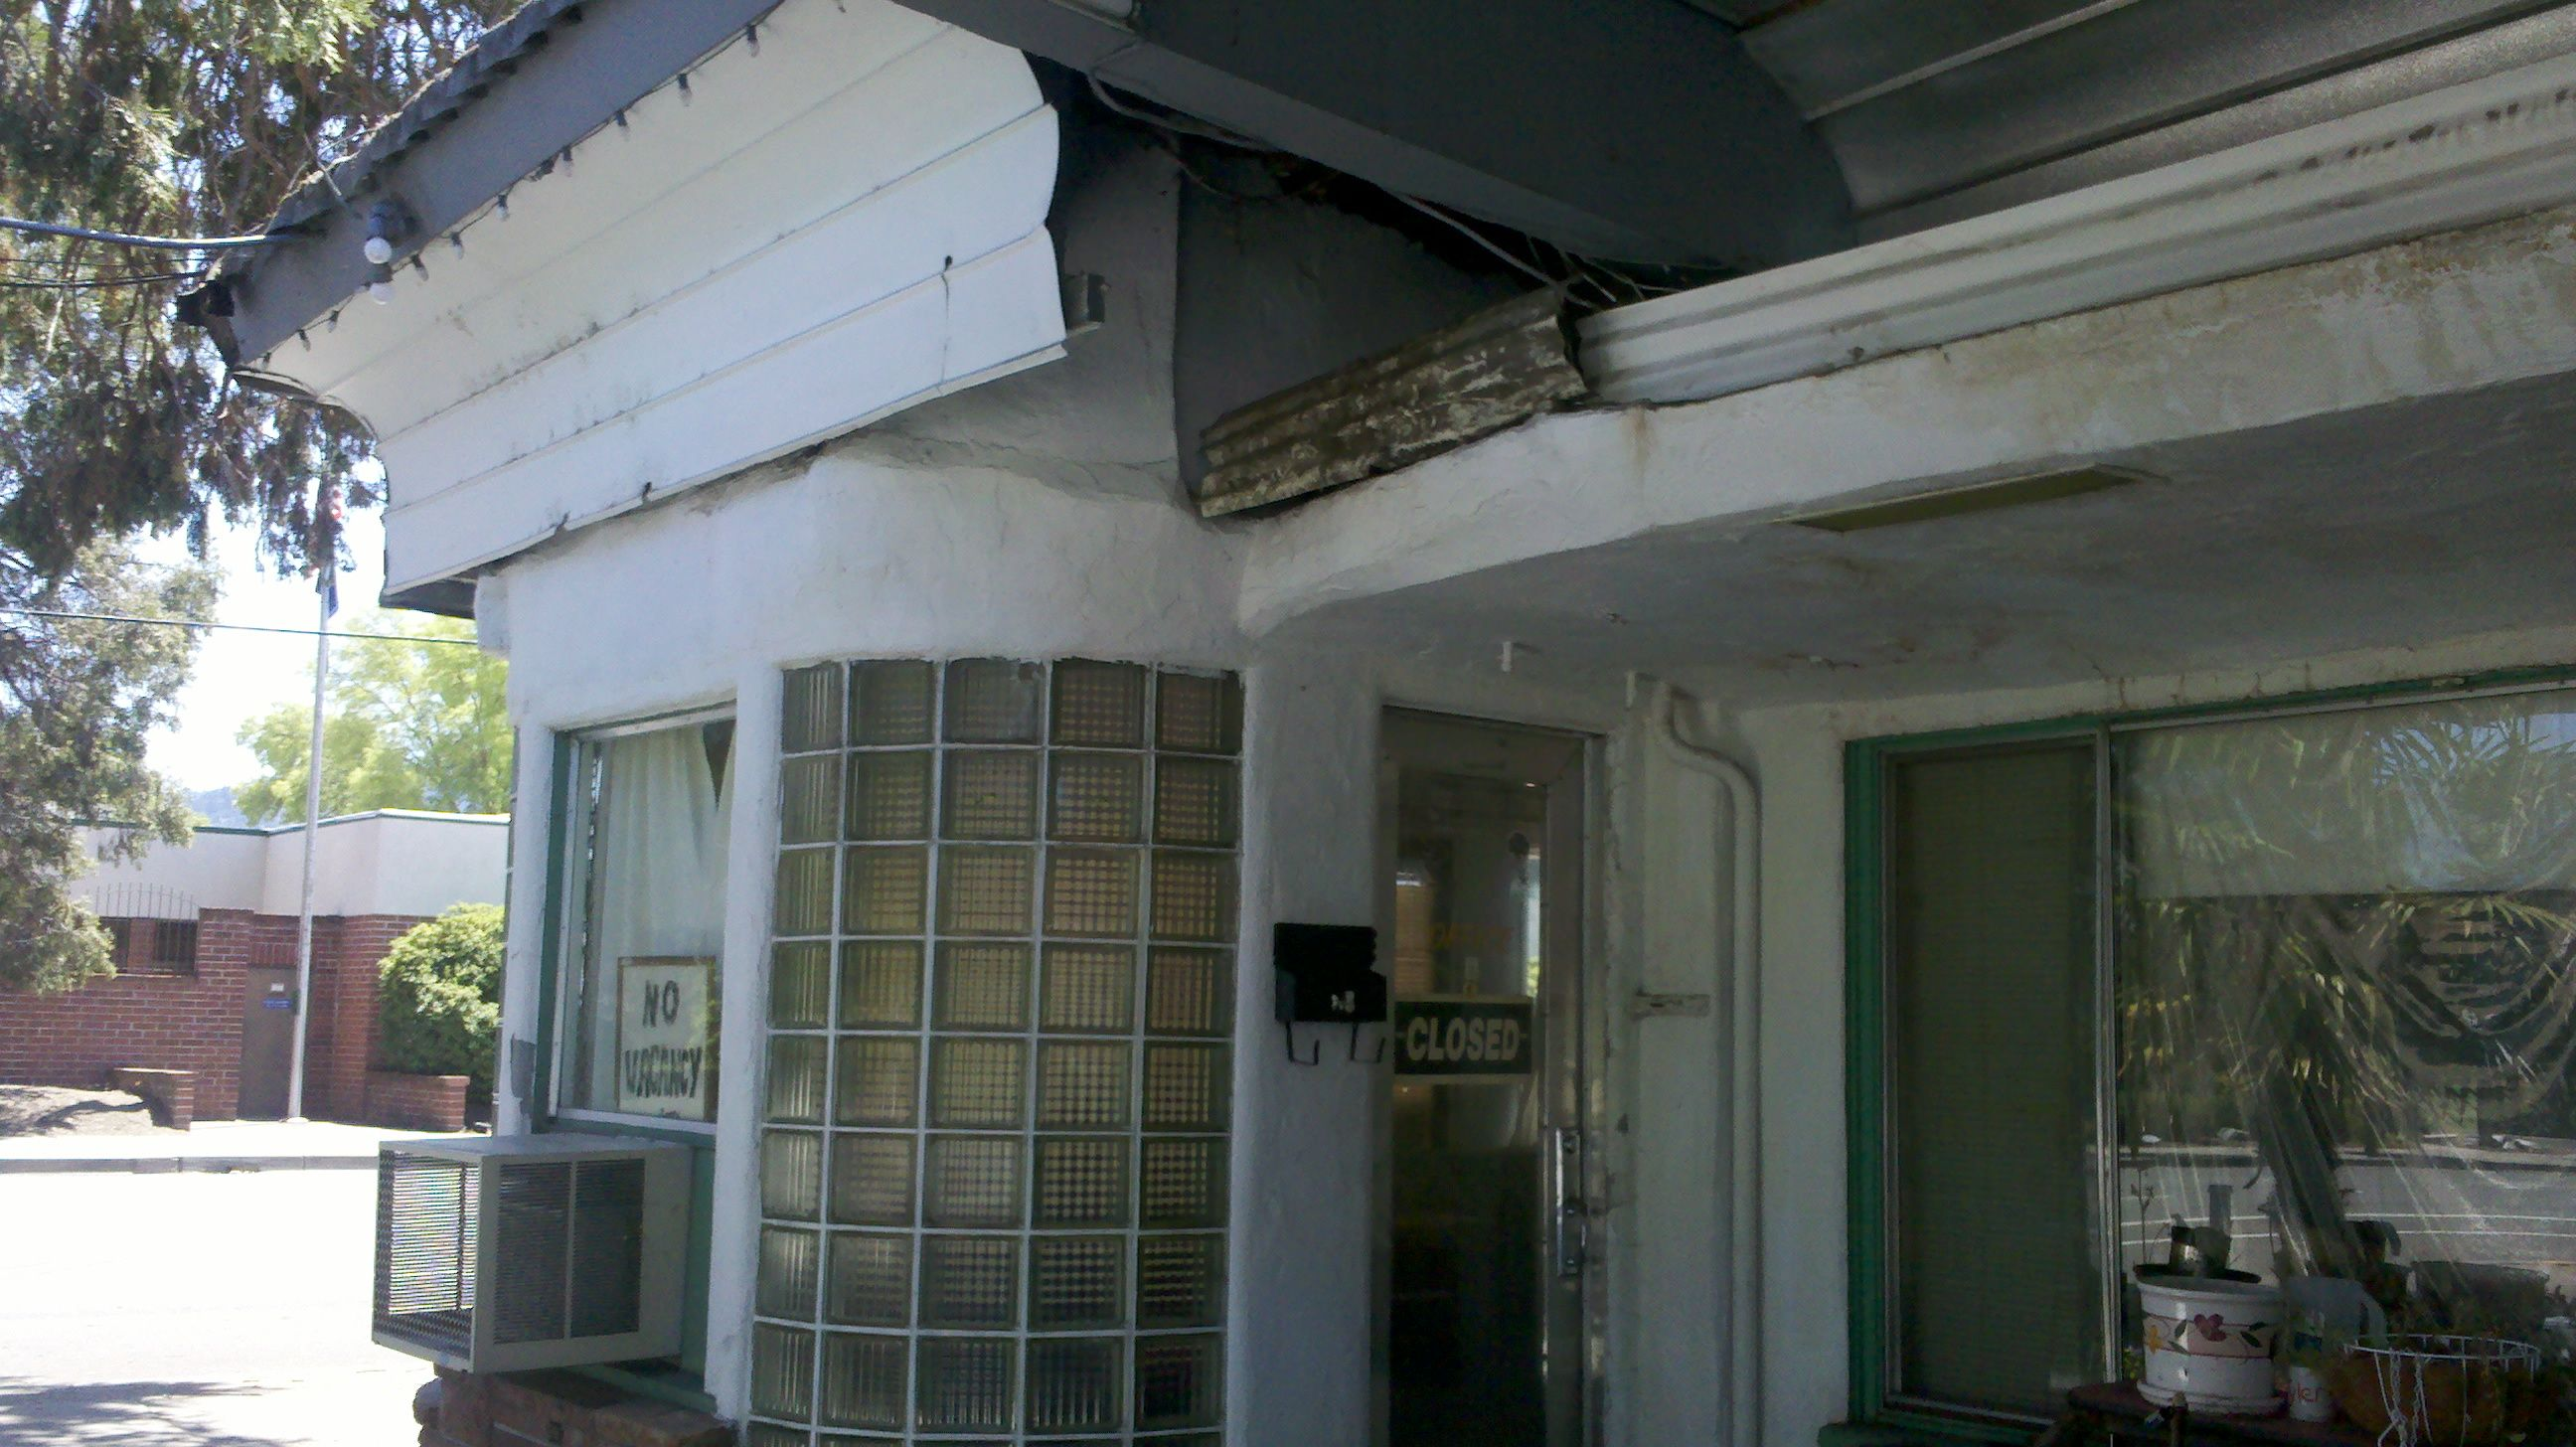 In grants pass oregon a 1930s motel with a wonderful non working neon sign the entire enterprise now needs significant repair july 2013